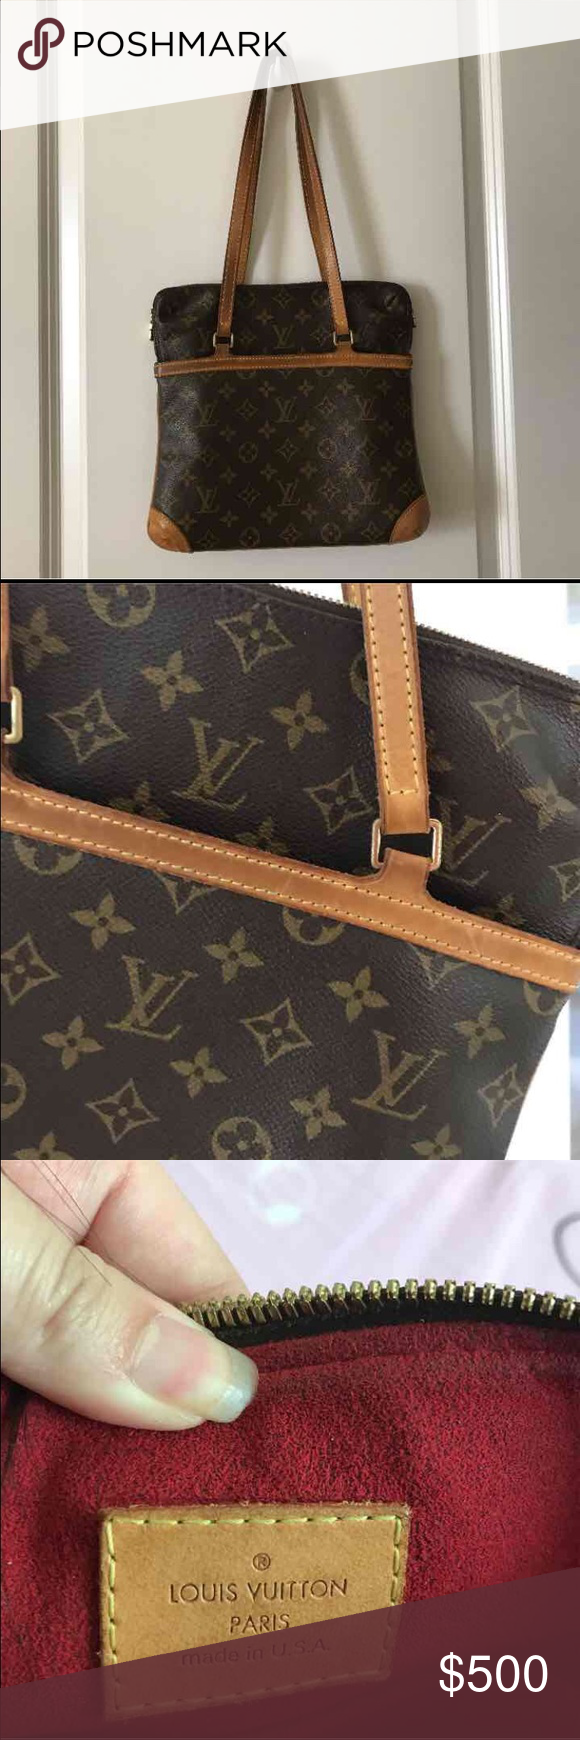 Louis Vuitton Shoes In Burleaque gently used authentic louis vuitton bags 57ebe5993b